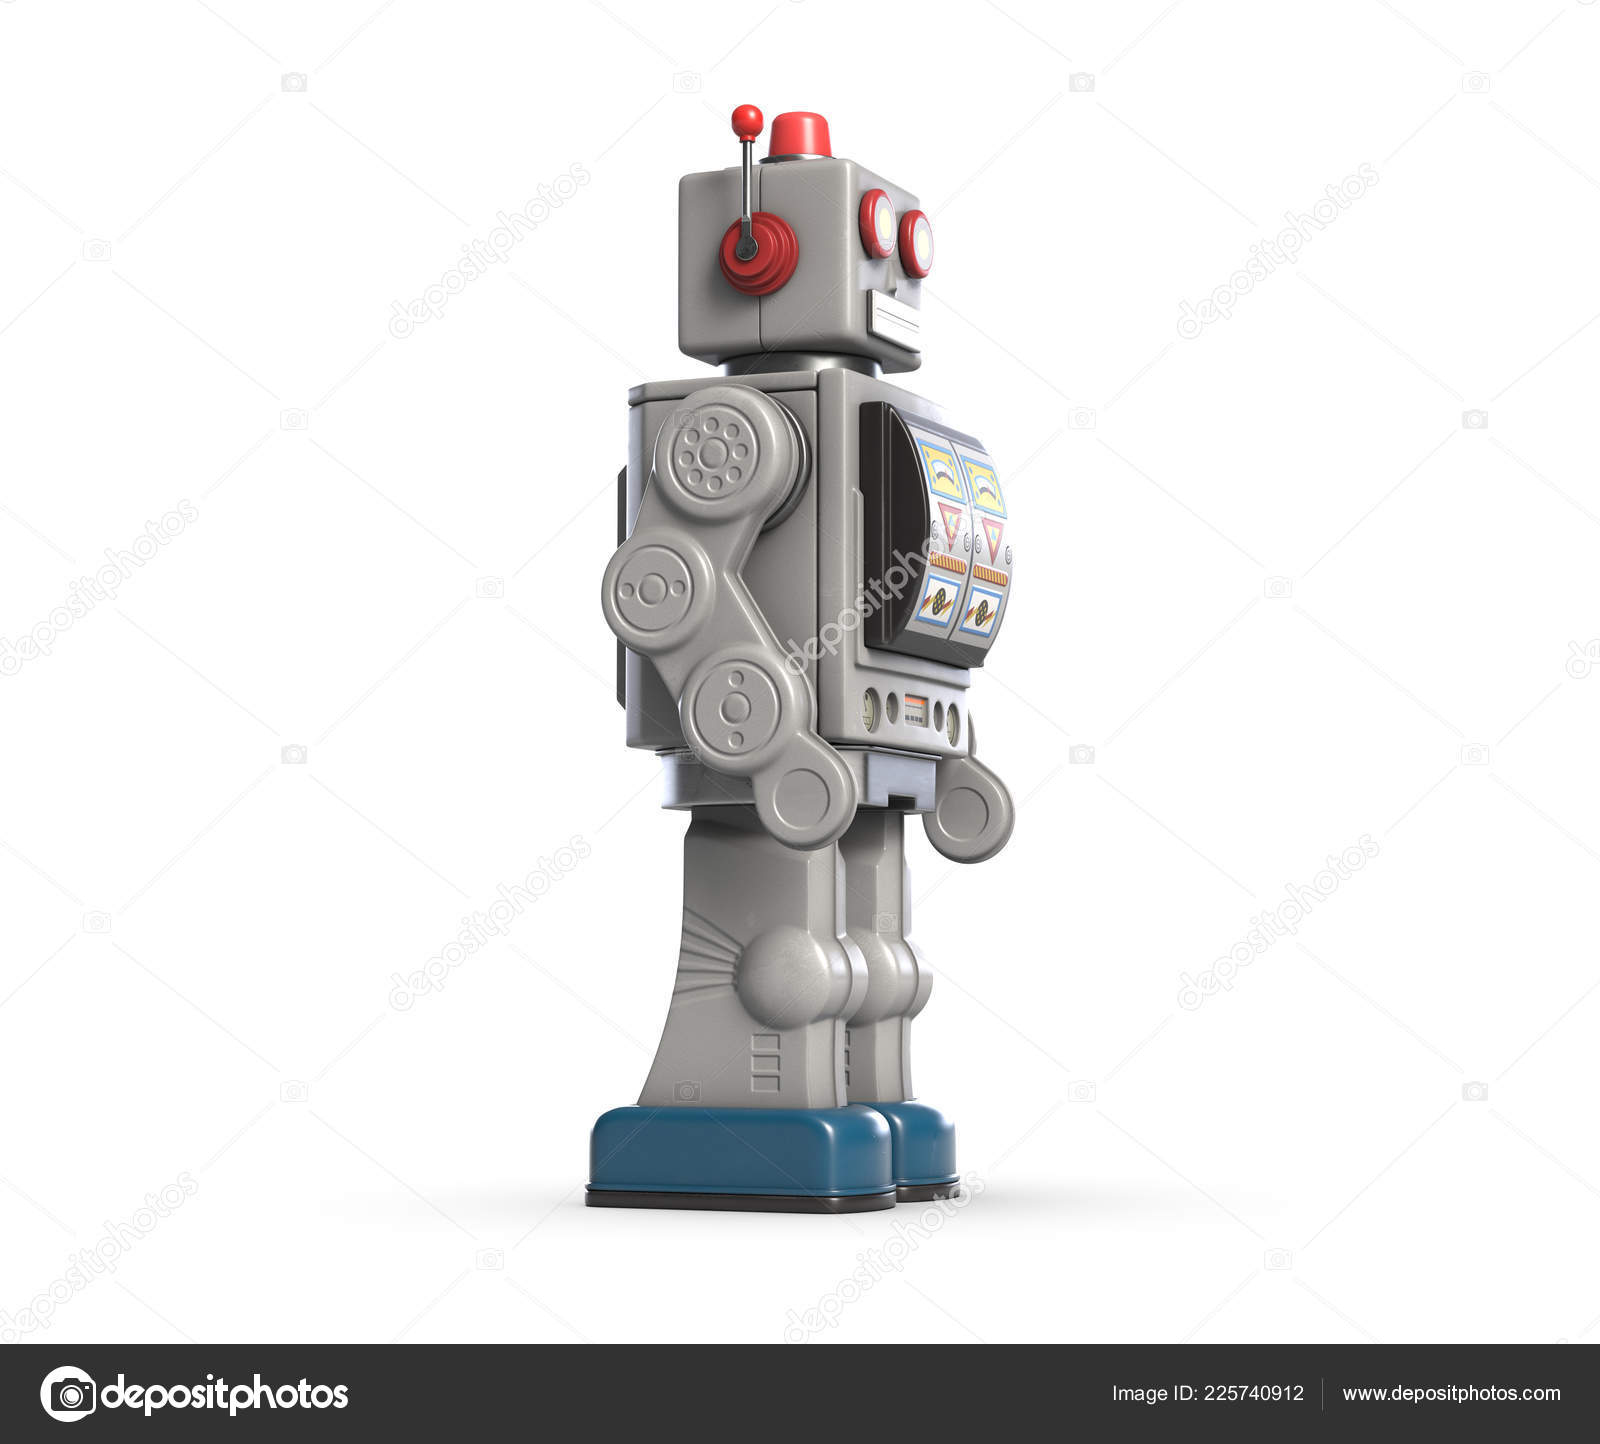 3d illustration of vintage robot toy isolated on white